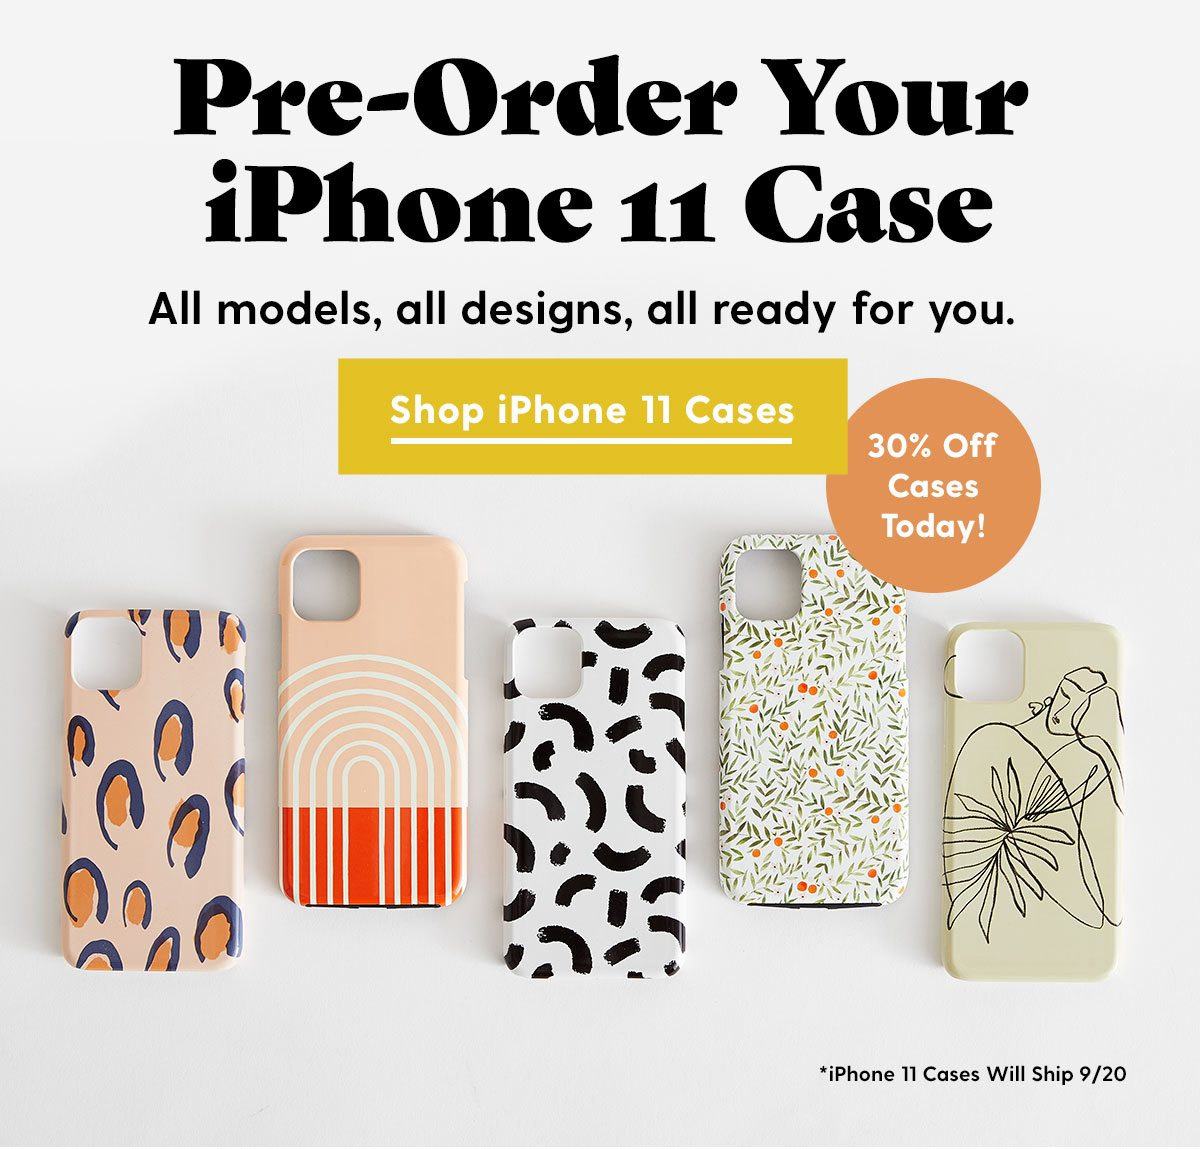 Pre Order Your iPhone 11 Case